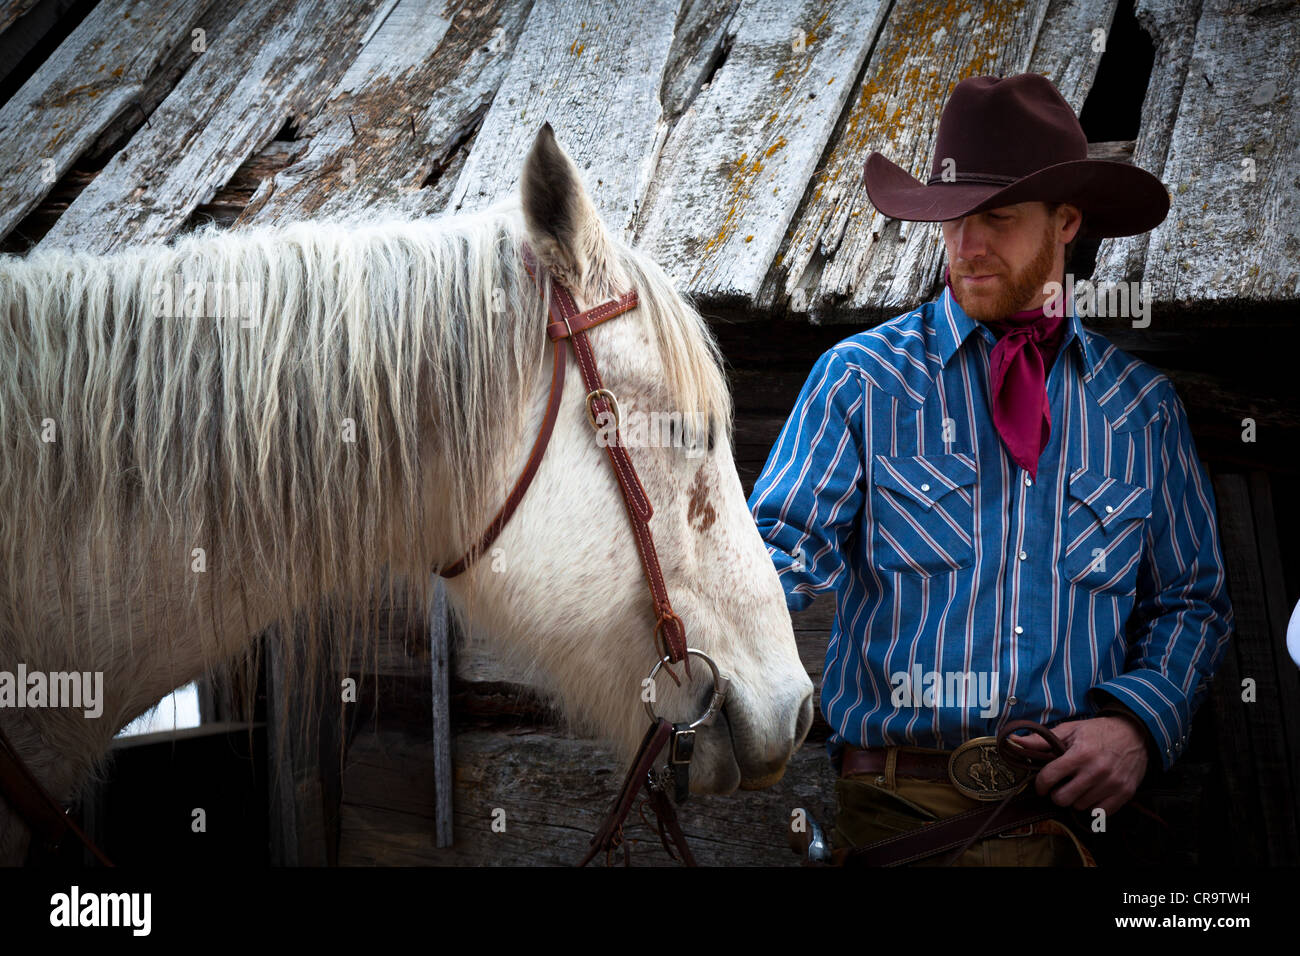 A cowboy and his horse on a ranch in northeastern Wyoming - Stock Image